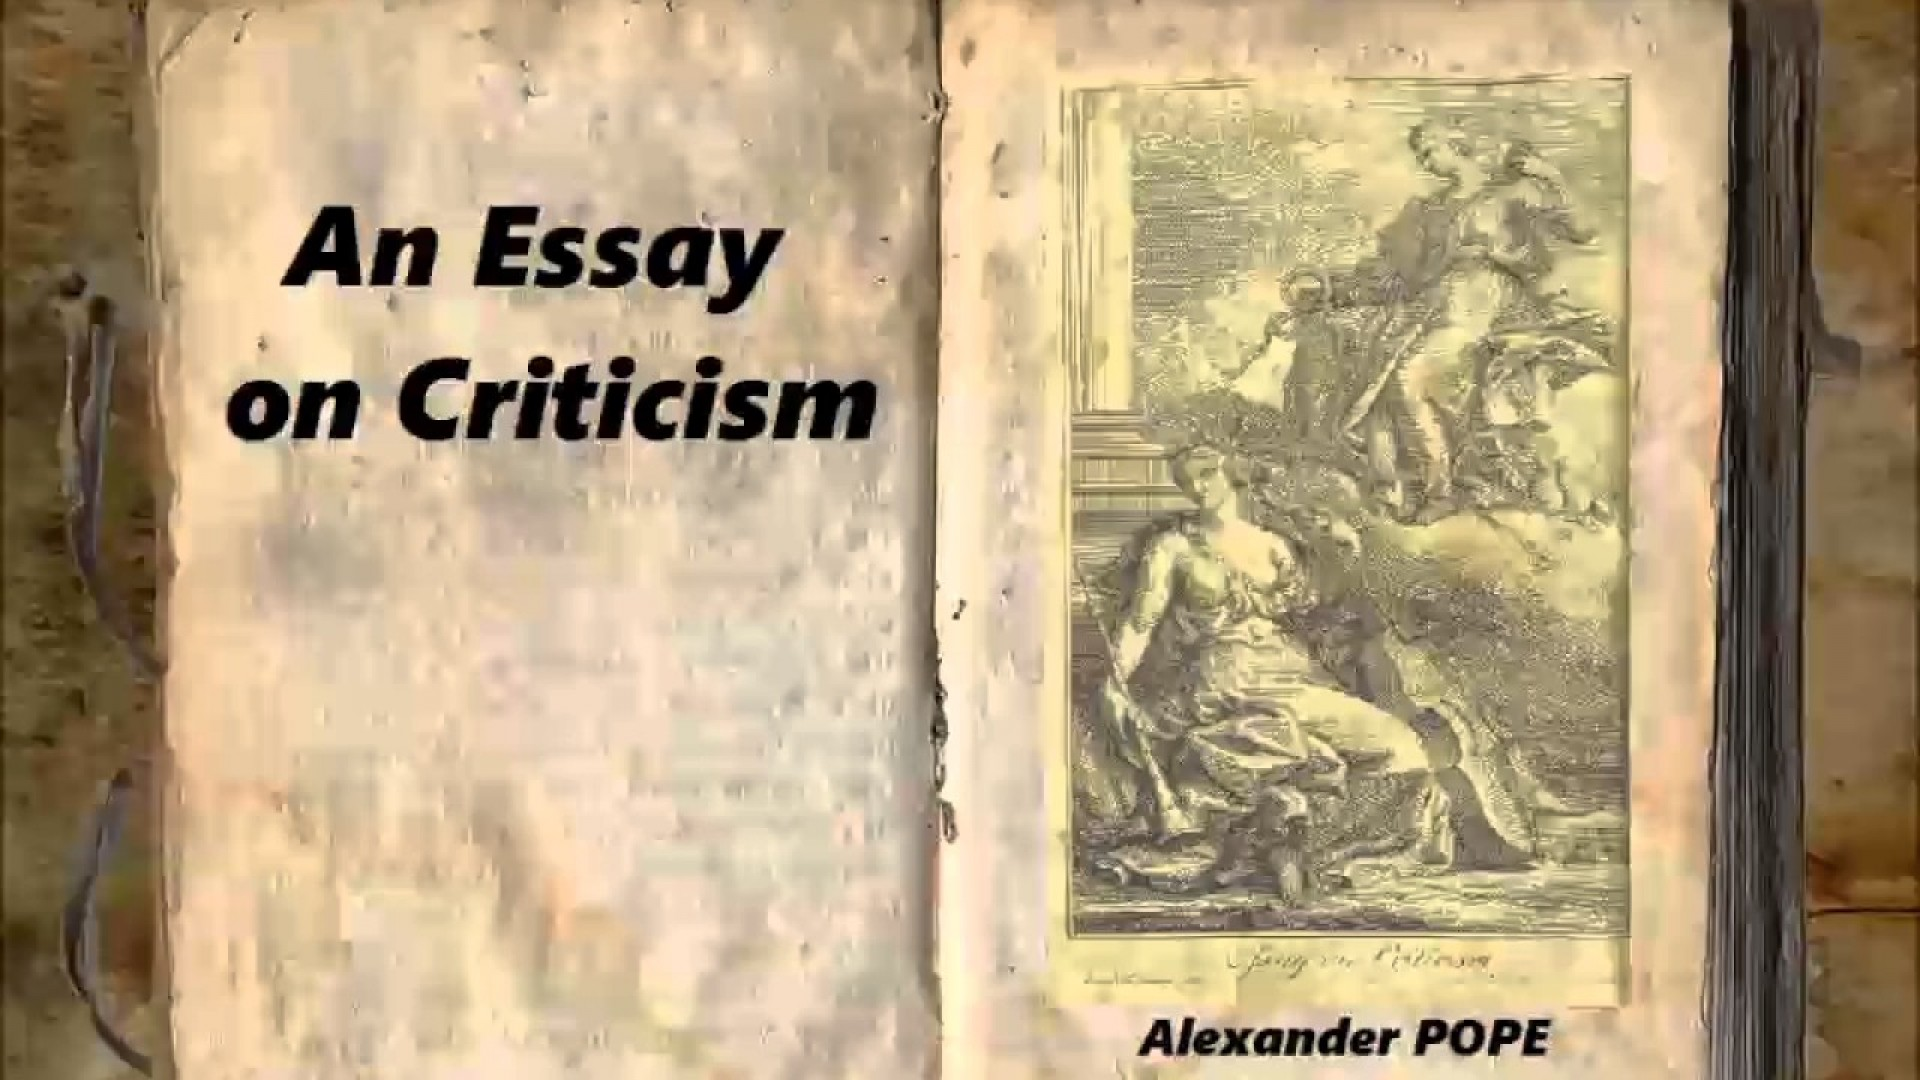 006 Essay Example Maxresdefault Alexander Pope On Outstanding Criticism Part 1 Analysis Summary 1920